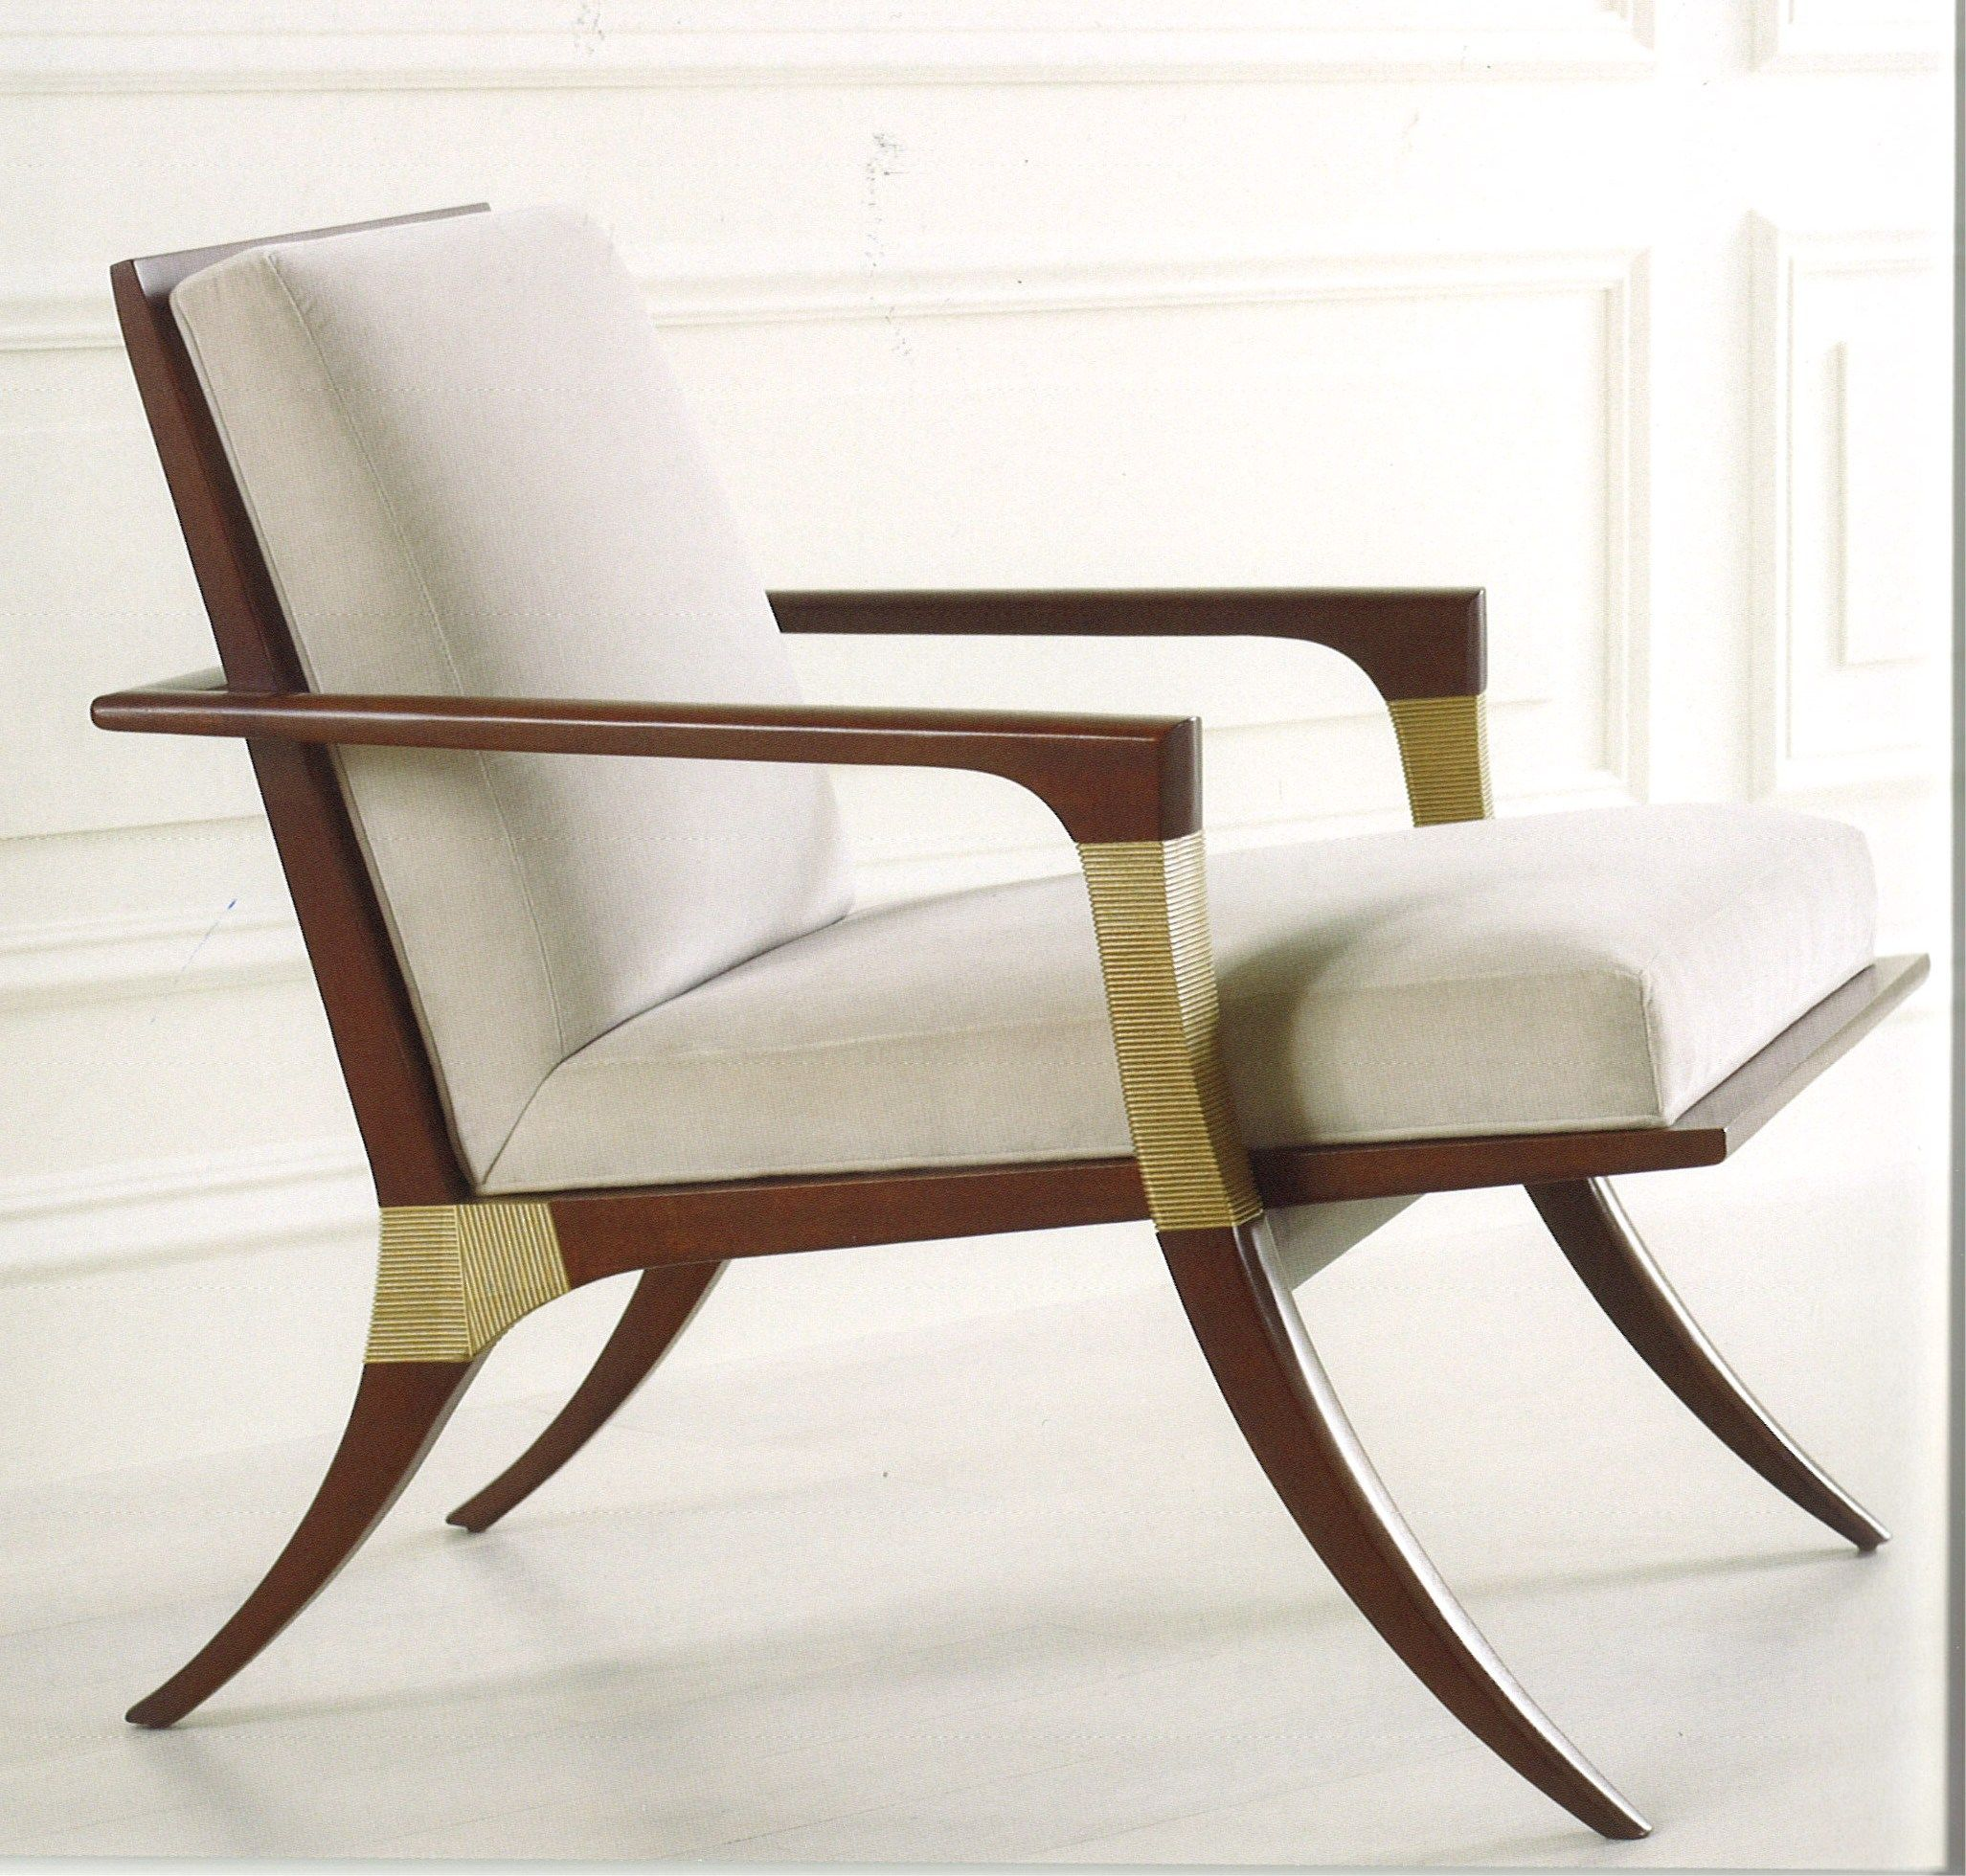 baker tufted dining chairs wood leg white accent thomas pheasant collection athens lounge chair